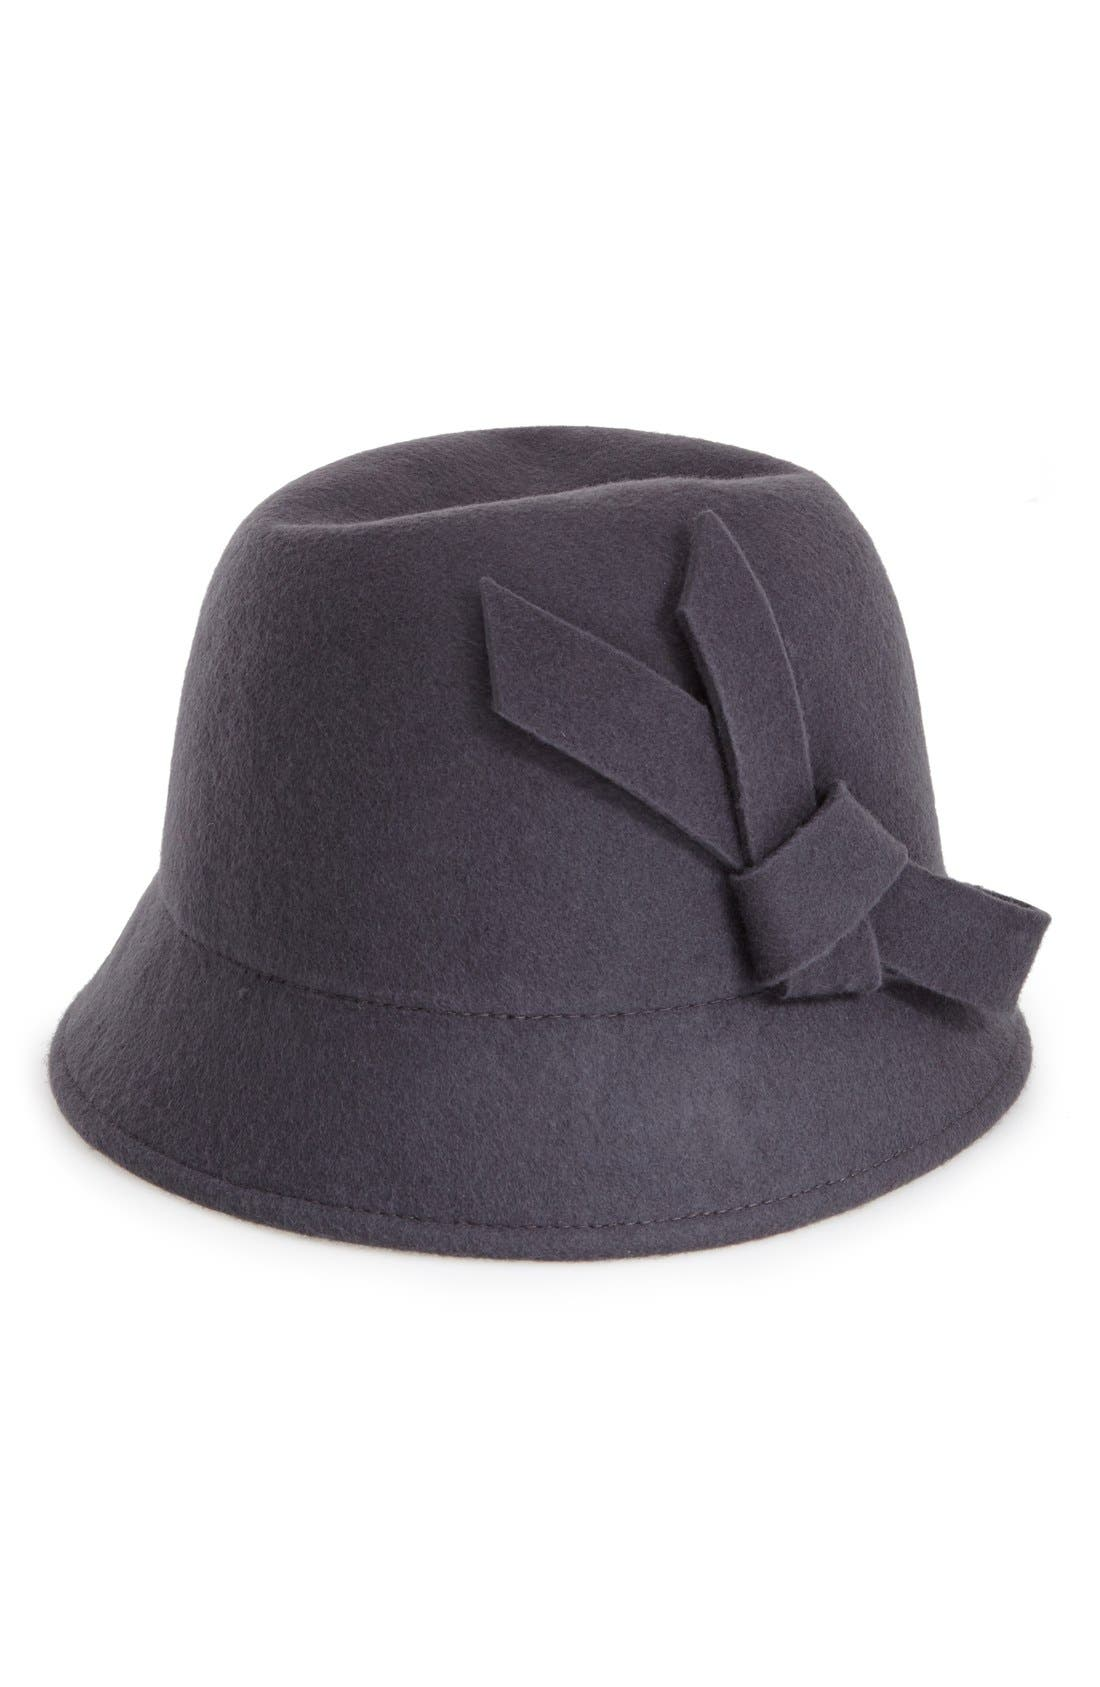 Alternate Image 1 Selected - Nordstrom Wool Bow Cloche